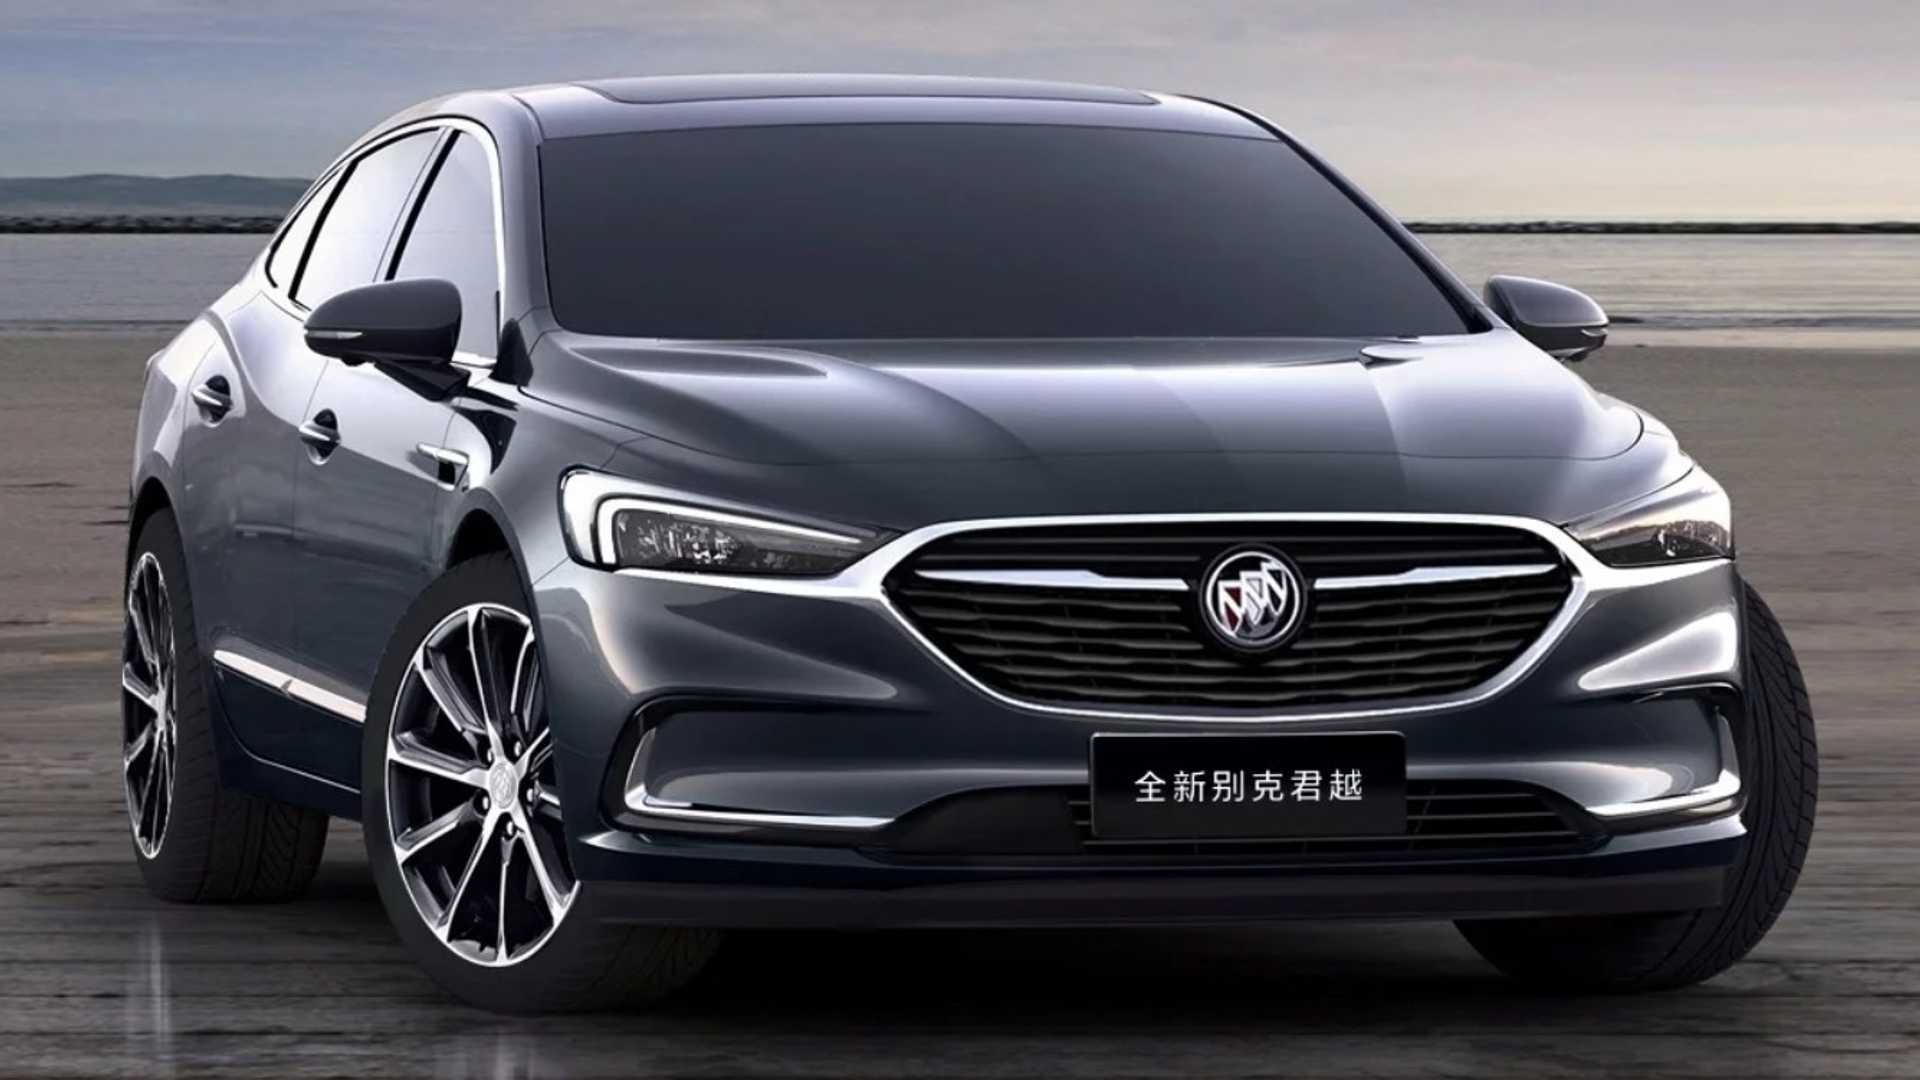 2020 Buick LaCrosse New Concept